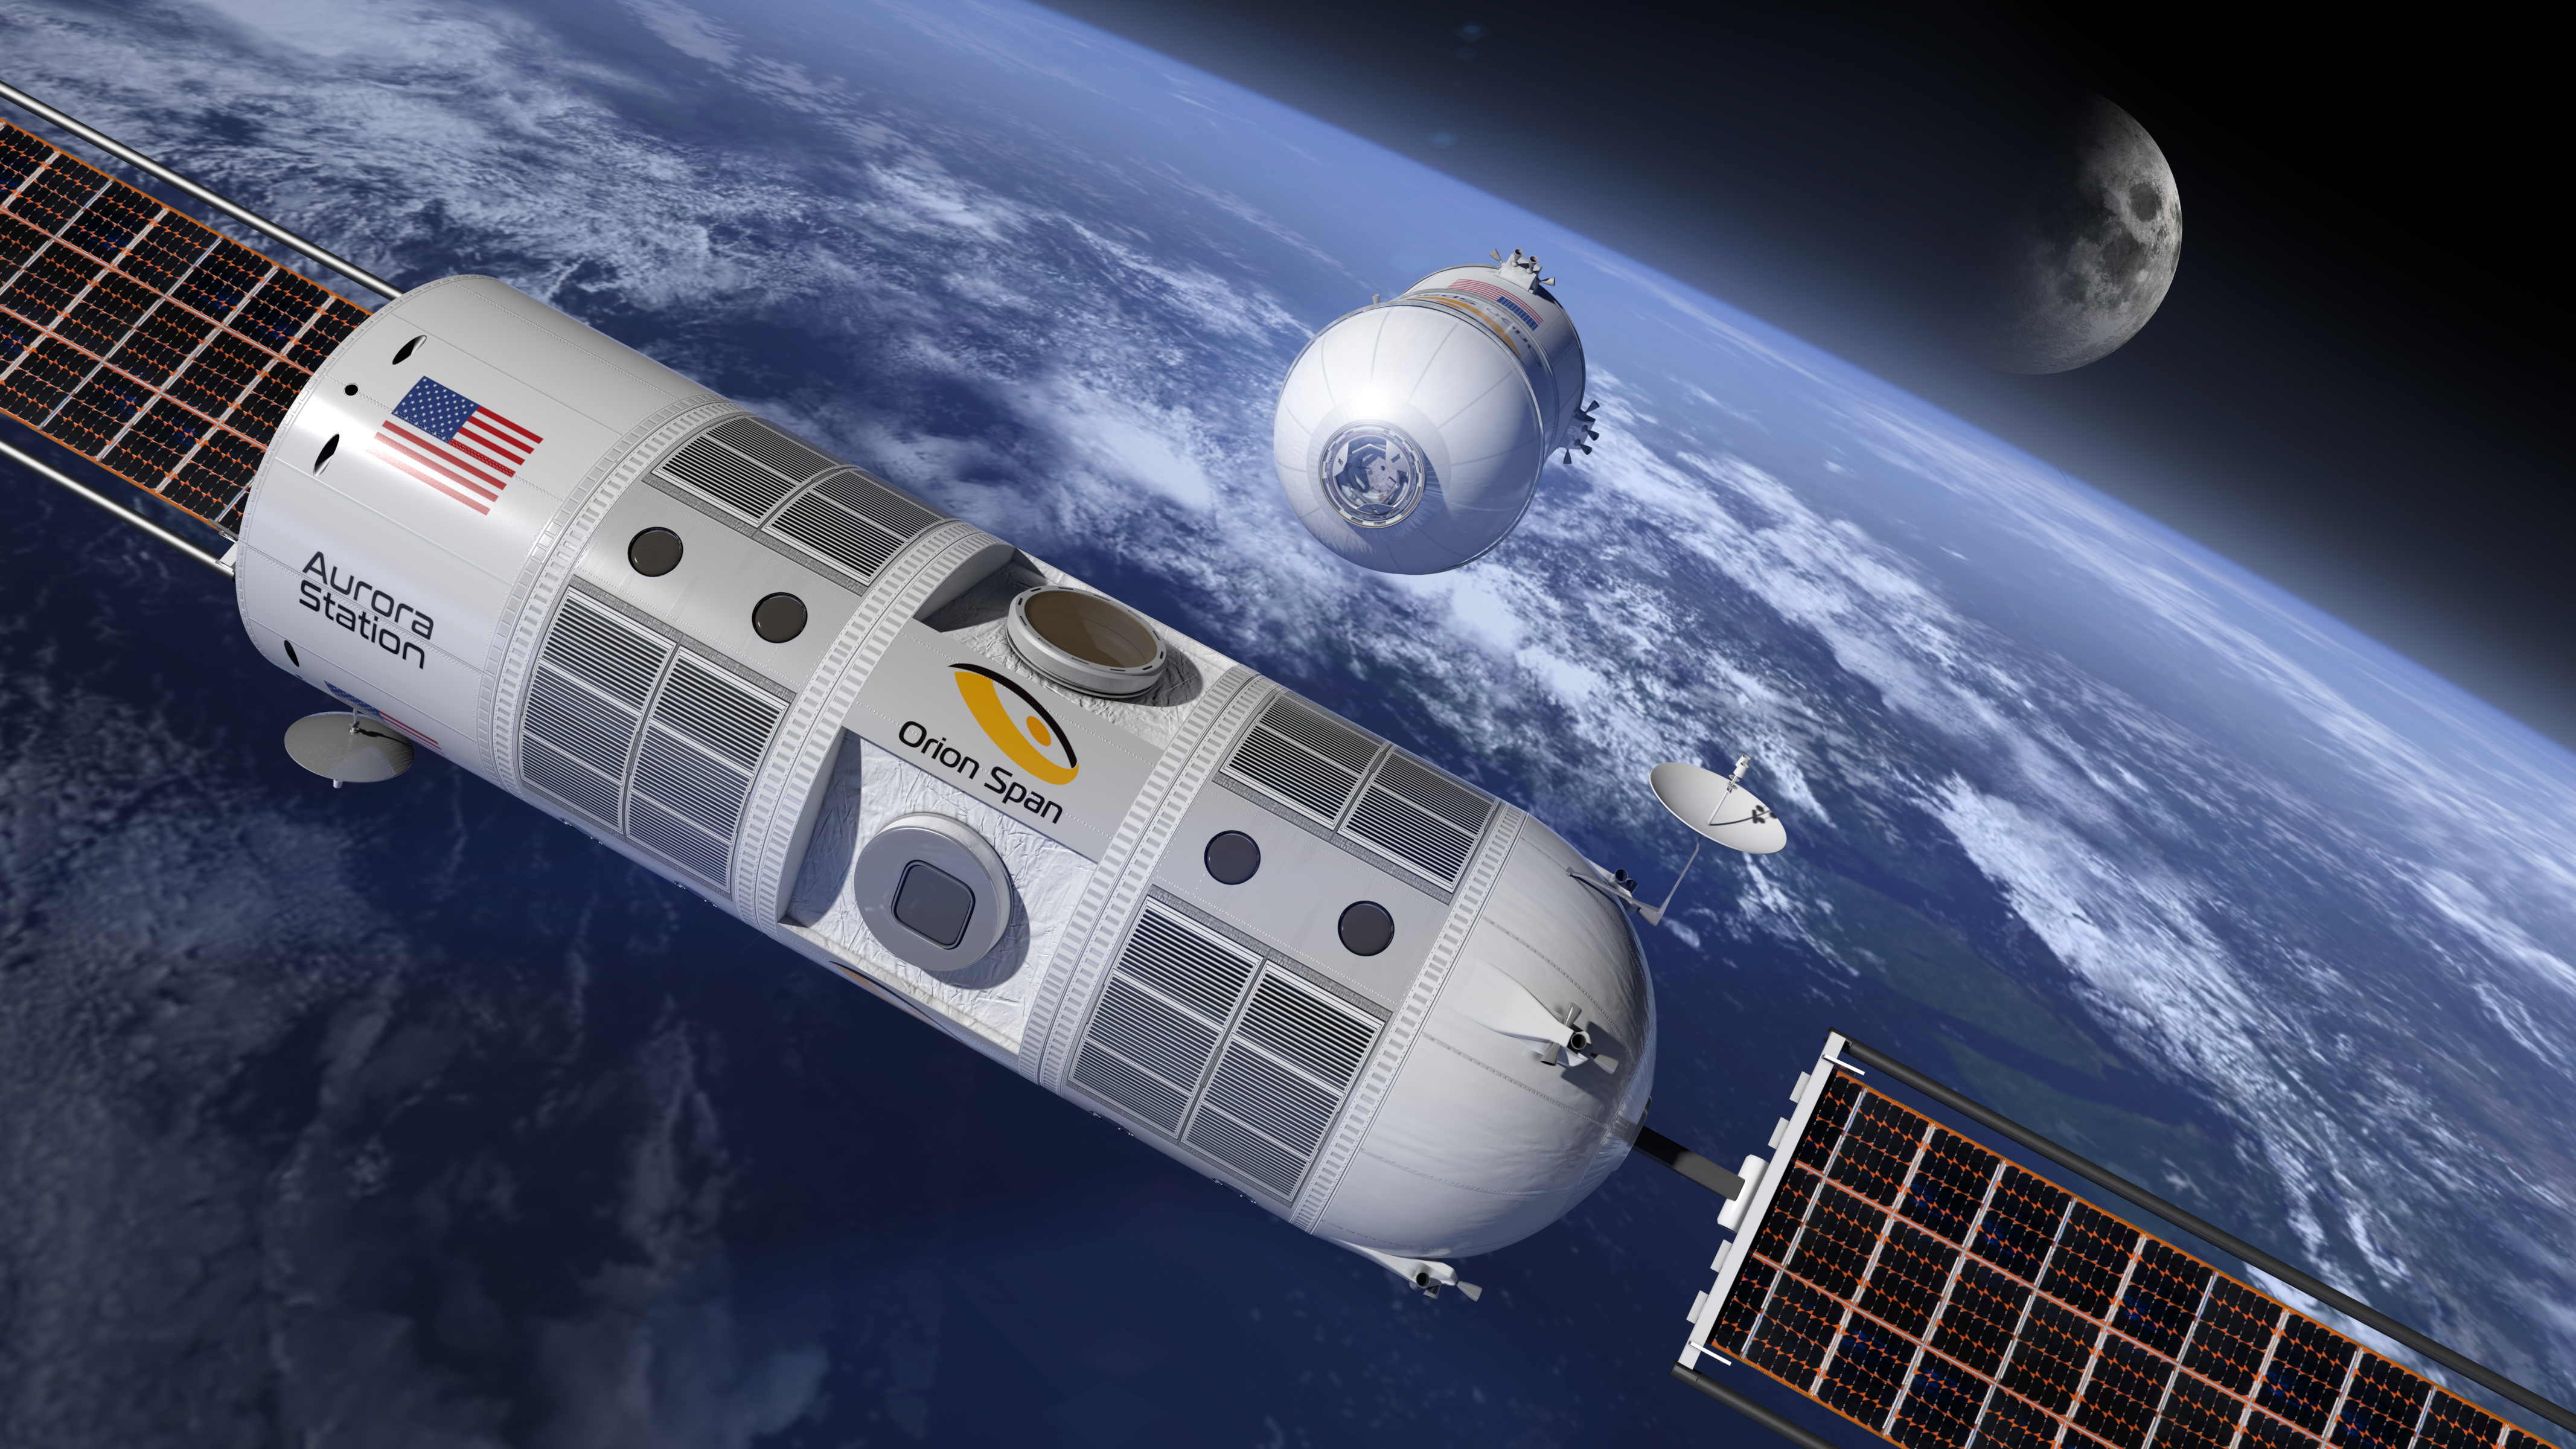 This could be the world's first space hotel